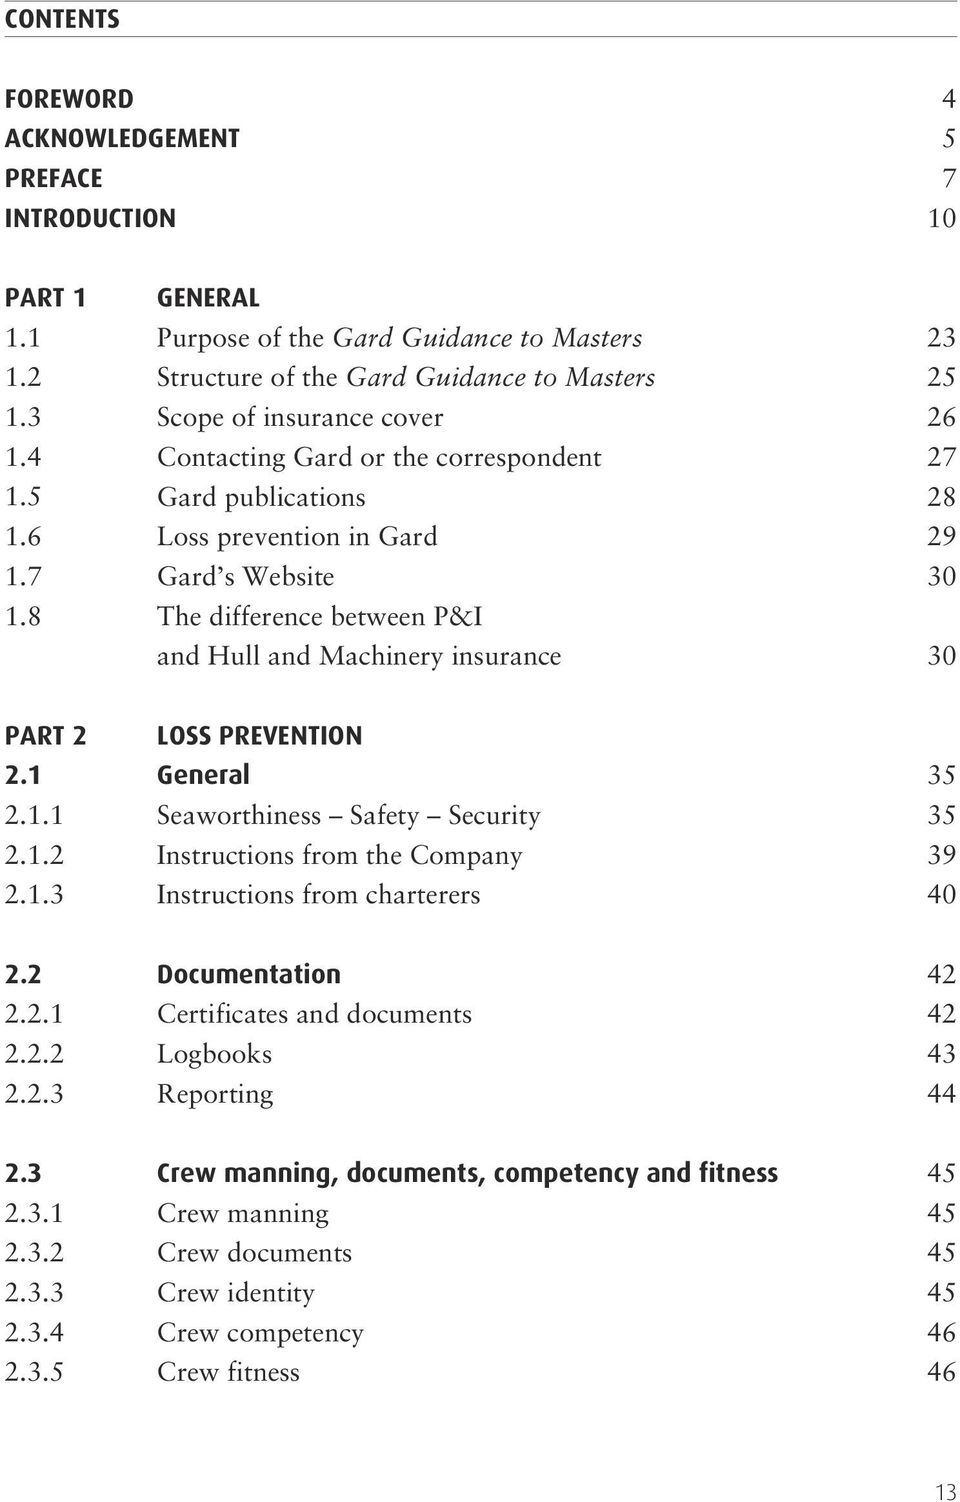 8 The difference between P&I and Hull and Machinery insurance 30 PART 2 LOSS PREVENTION 2.1 General 35 2.1.1 Seaworthiness Safety Security 35 2.1.2 Instructions from the Company 39 2.1.3 Instructions from charterers 40 2.